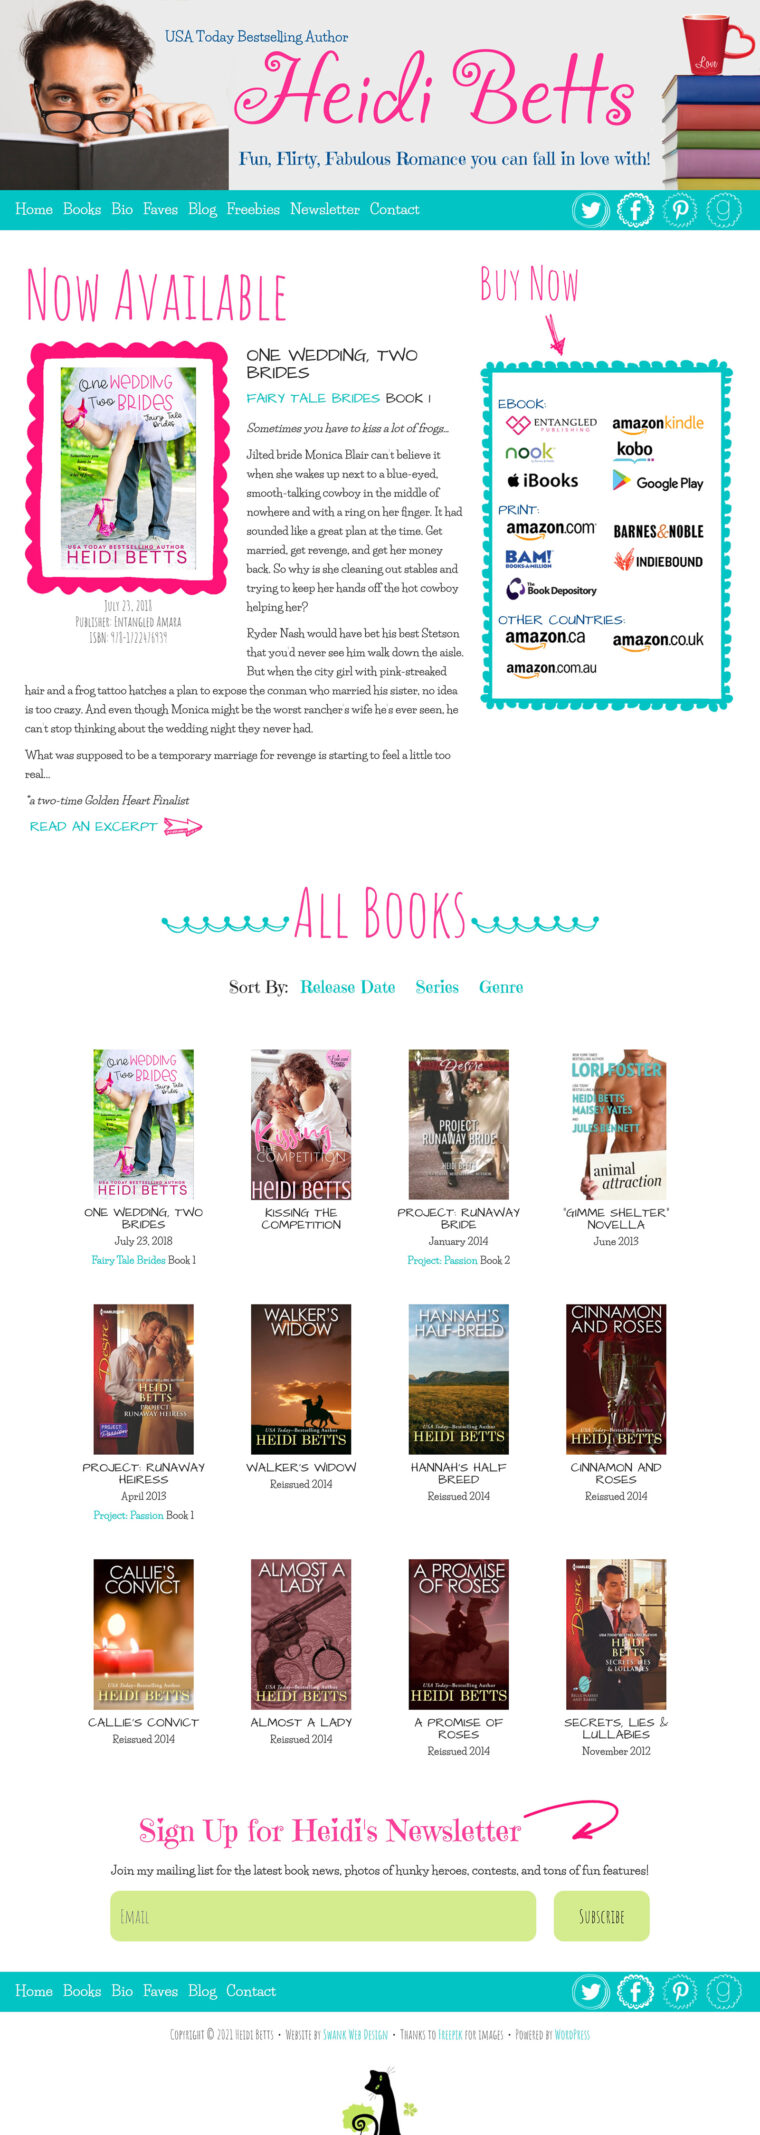 Heidi Betts books page design